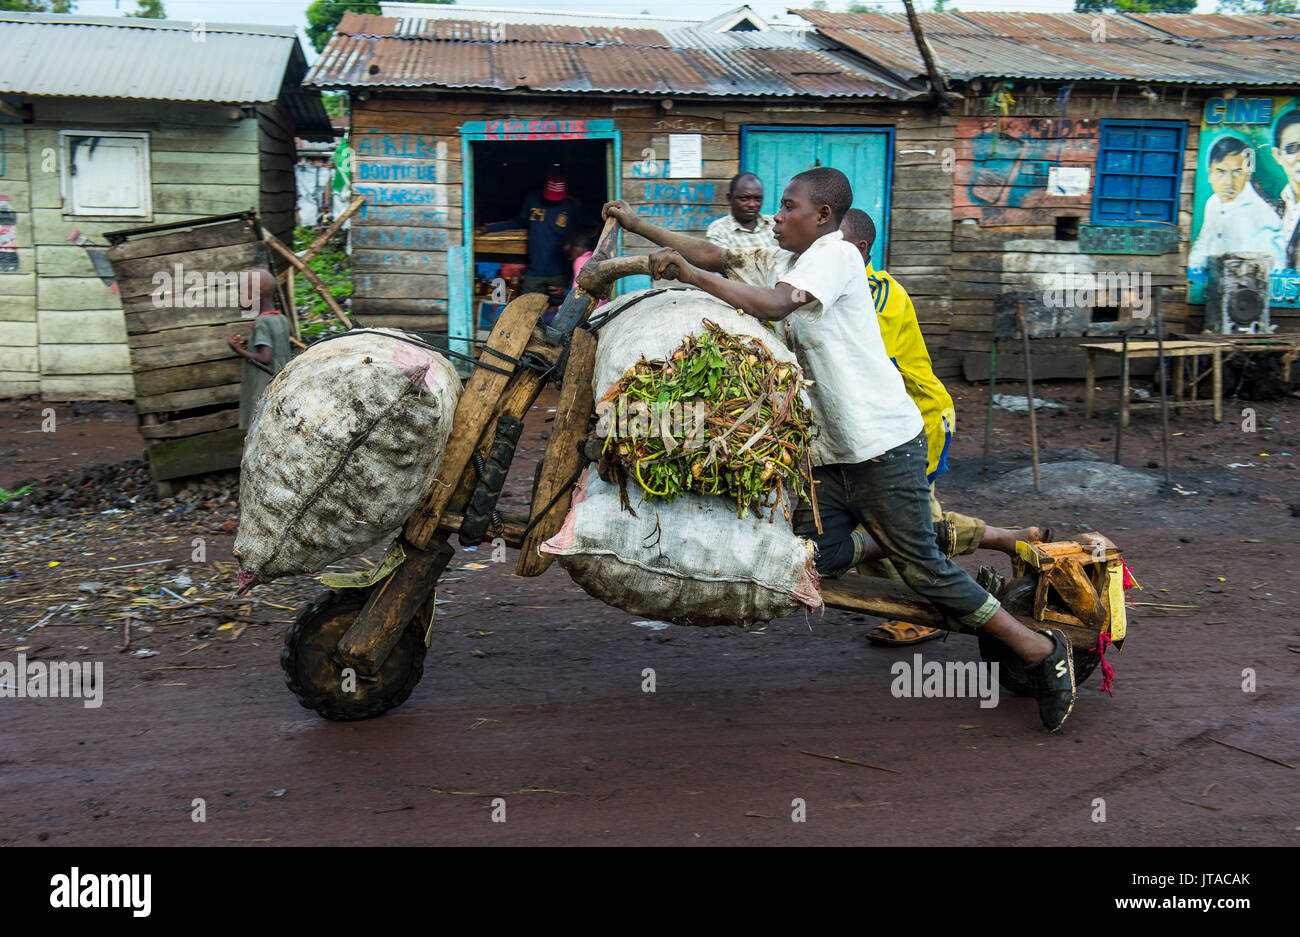 Local man transporting their goods on self made carriers, Goma, Democratic Republic of the Congo, Africa - Stock Image